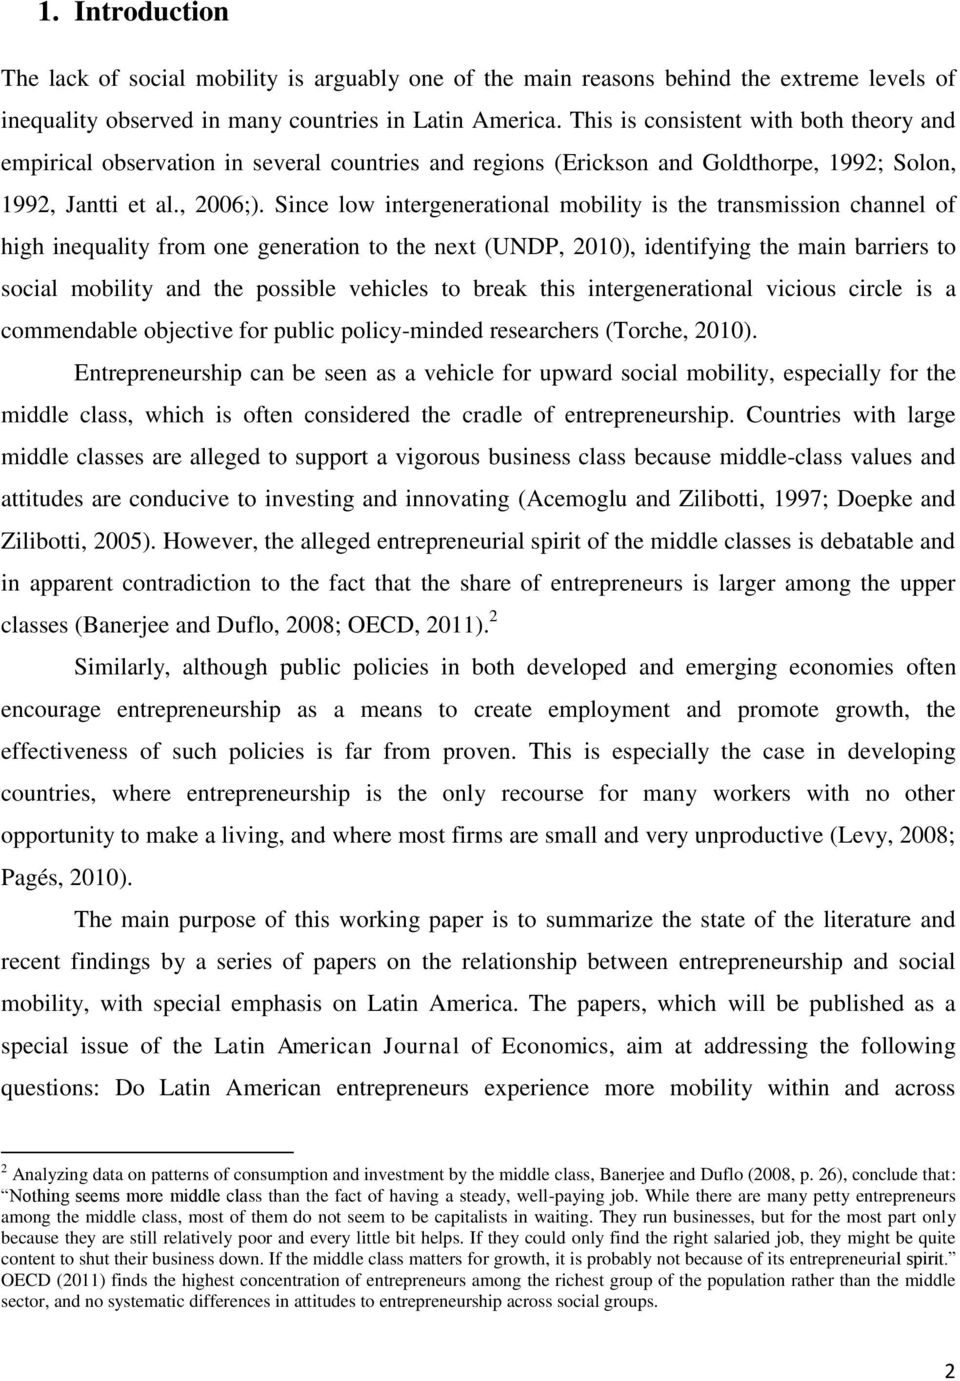 Since low intergenerational mobility is the transmission channel of high inequality from one generation to the next (UNDP, 2010), identifying the main barriers to social mobility and the possible